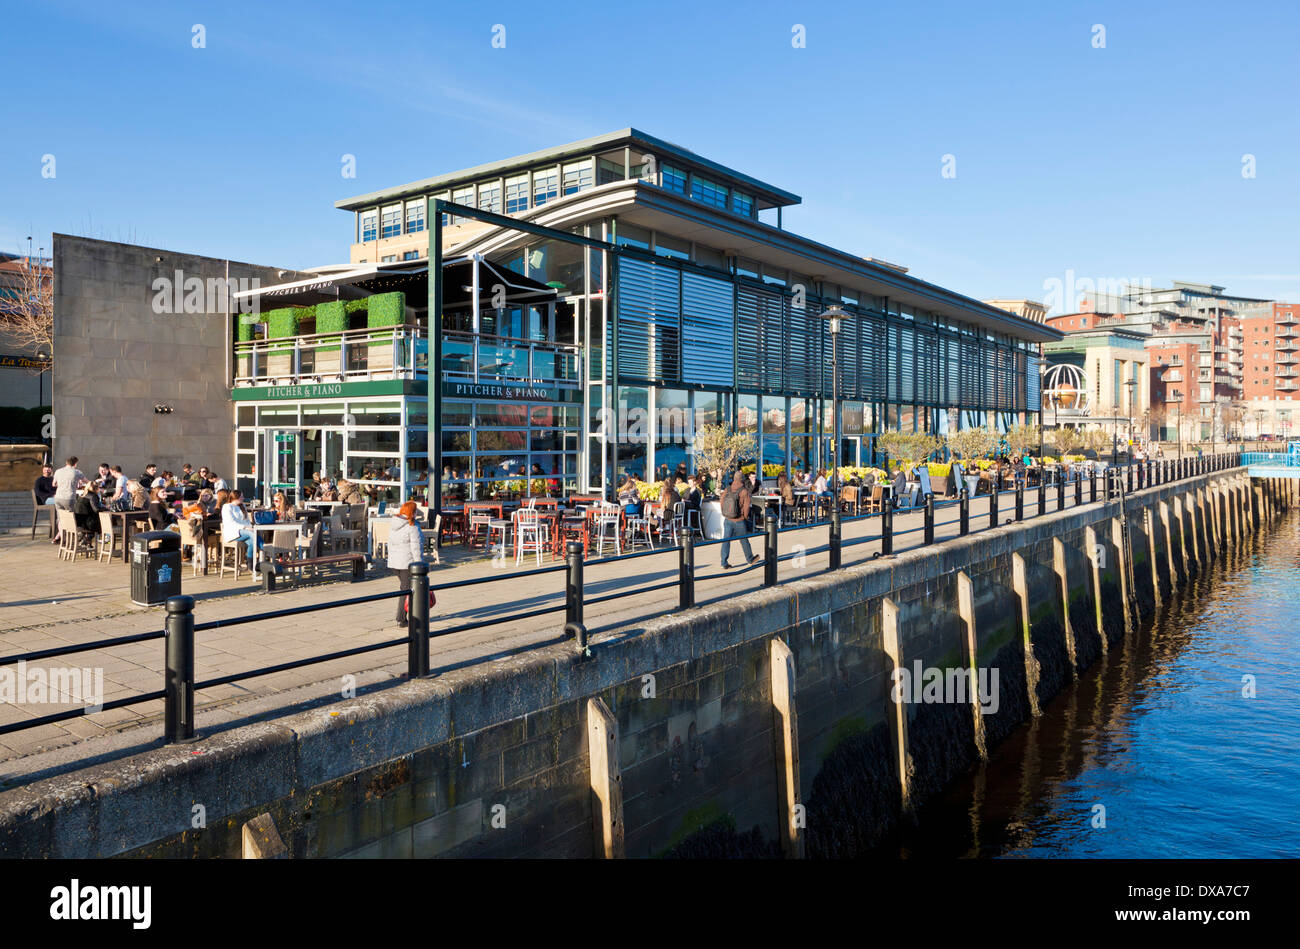 The Pitcher and piano bar and restaurant on the Quayside newcastle upon tyne Tyne and Wear Tyneside England UK GB EU Europe - Stock Image